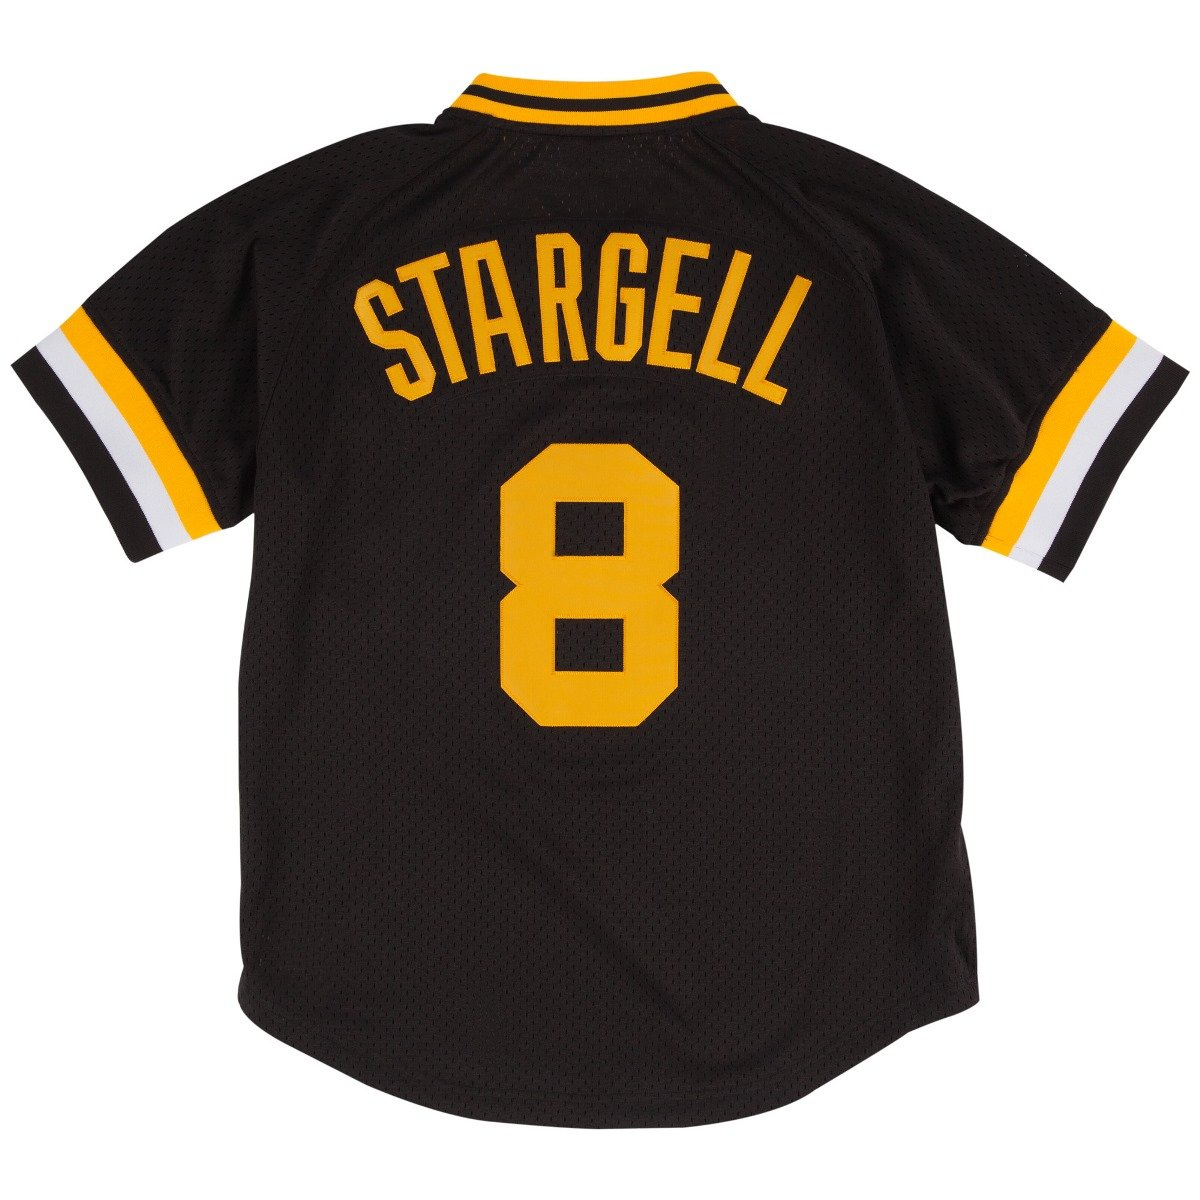 low priced 5cd30 4ab52 Mitchell & Ness Willie Stargell Black Pittsburgh Pirates Authentic Mesh  Batting Practice Jersey